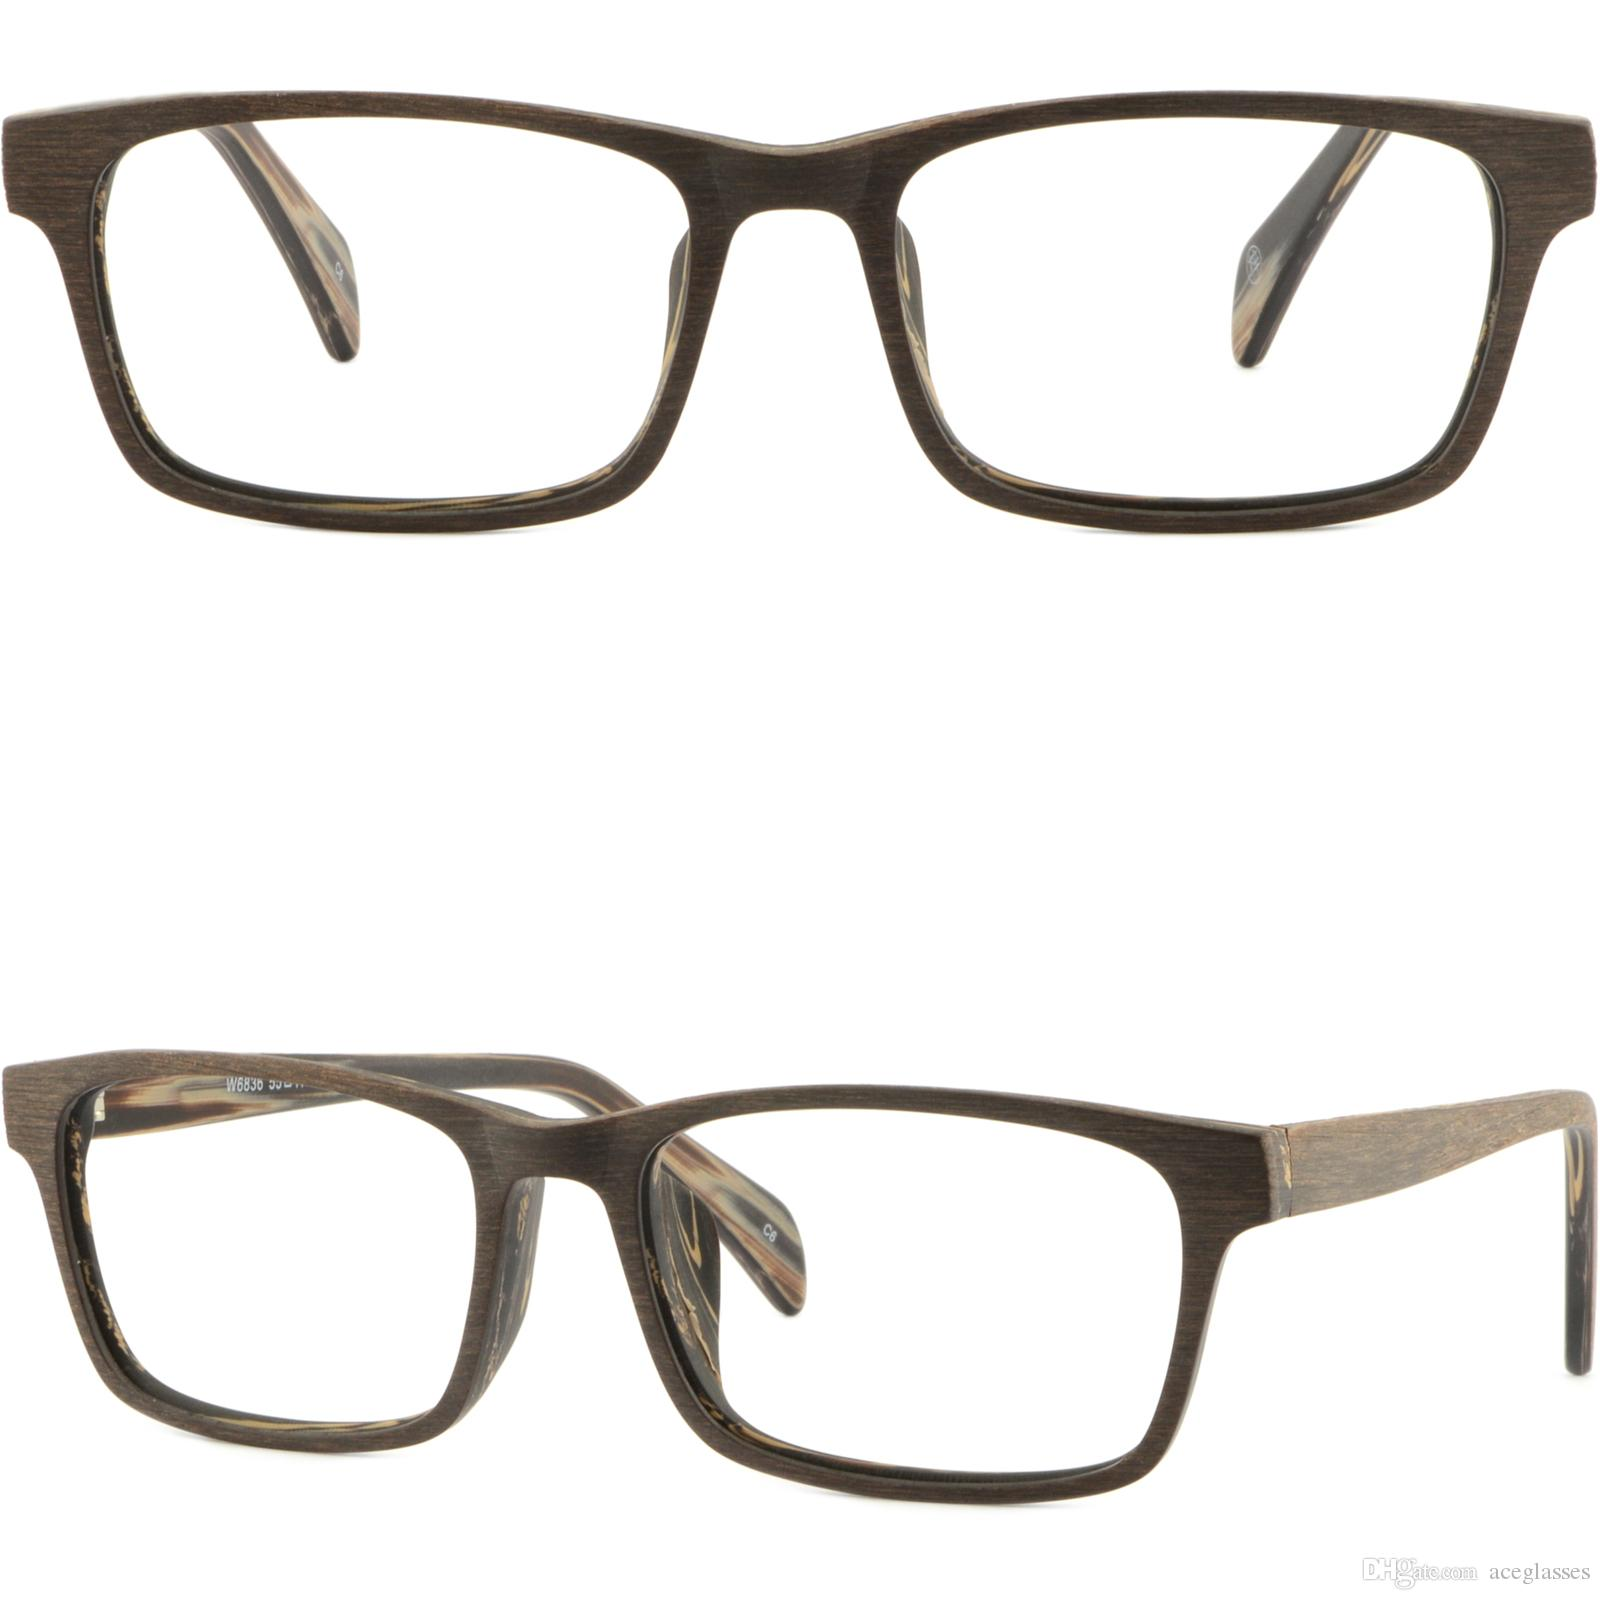 Light Mens Womens Frame Plastic Glasses Eyeglasses Rectangle